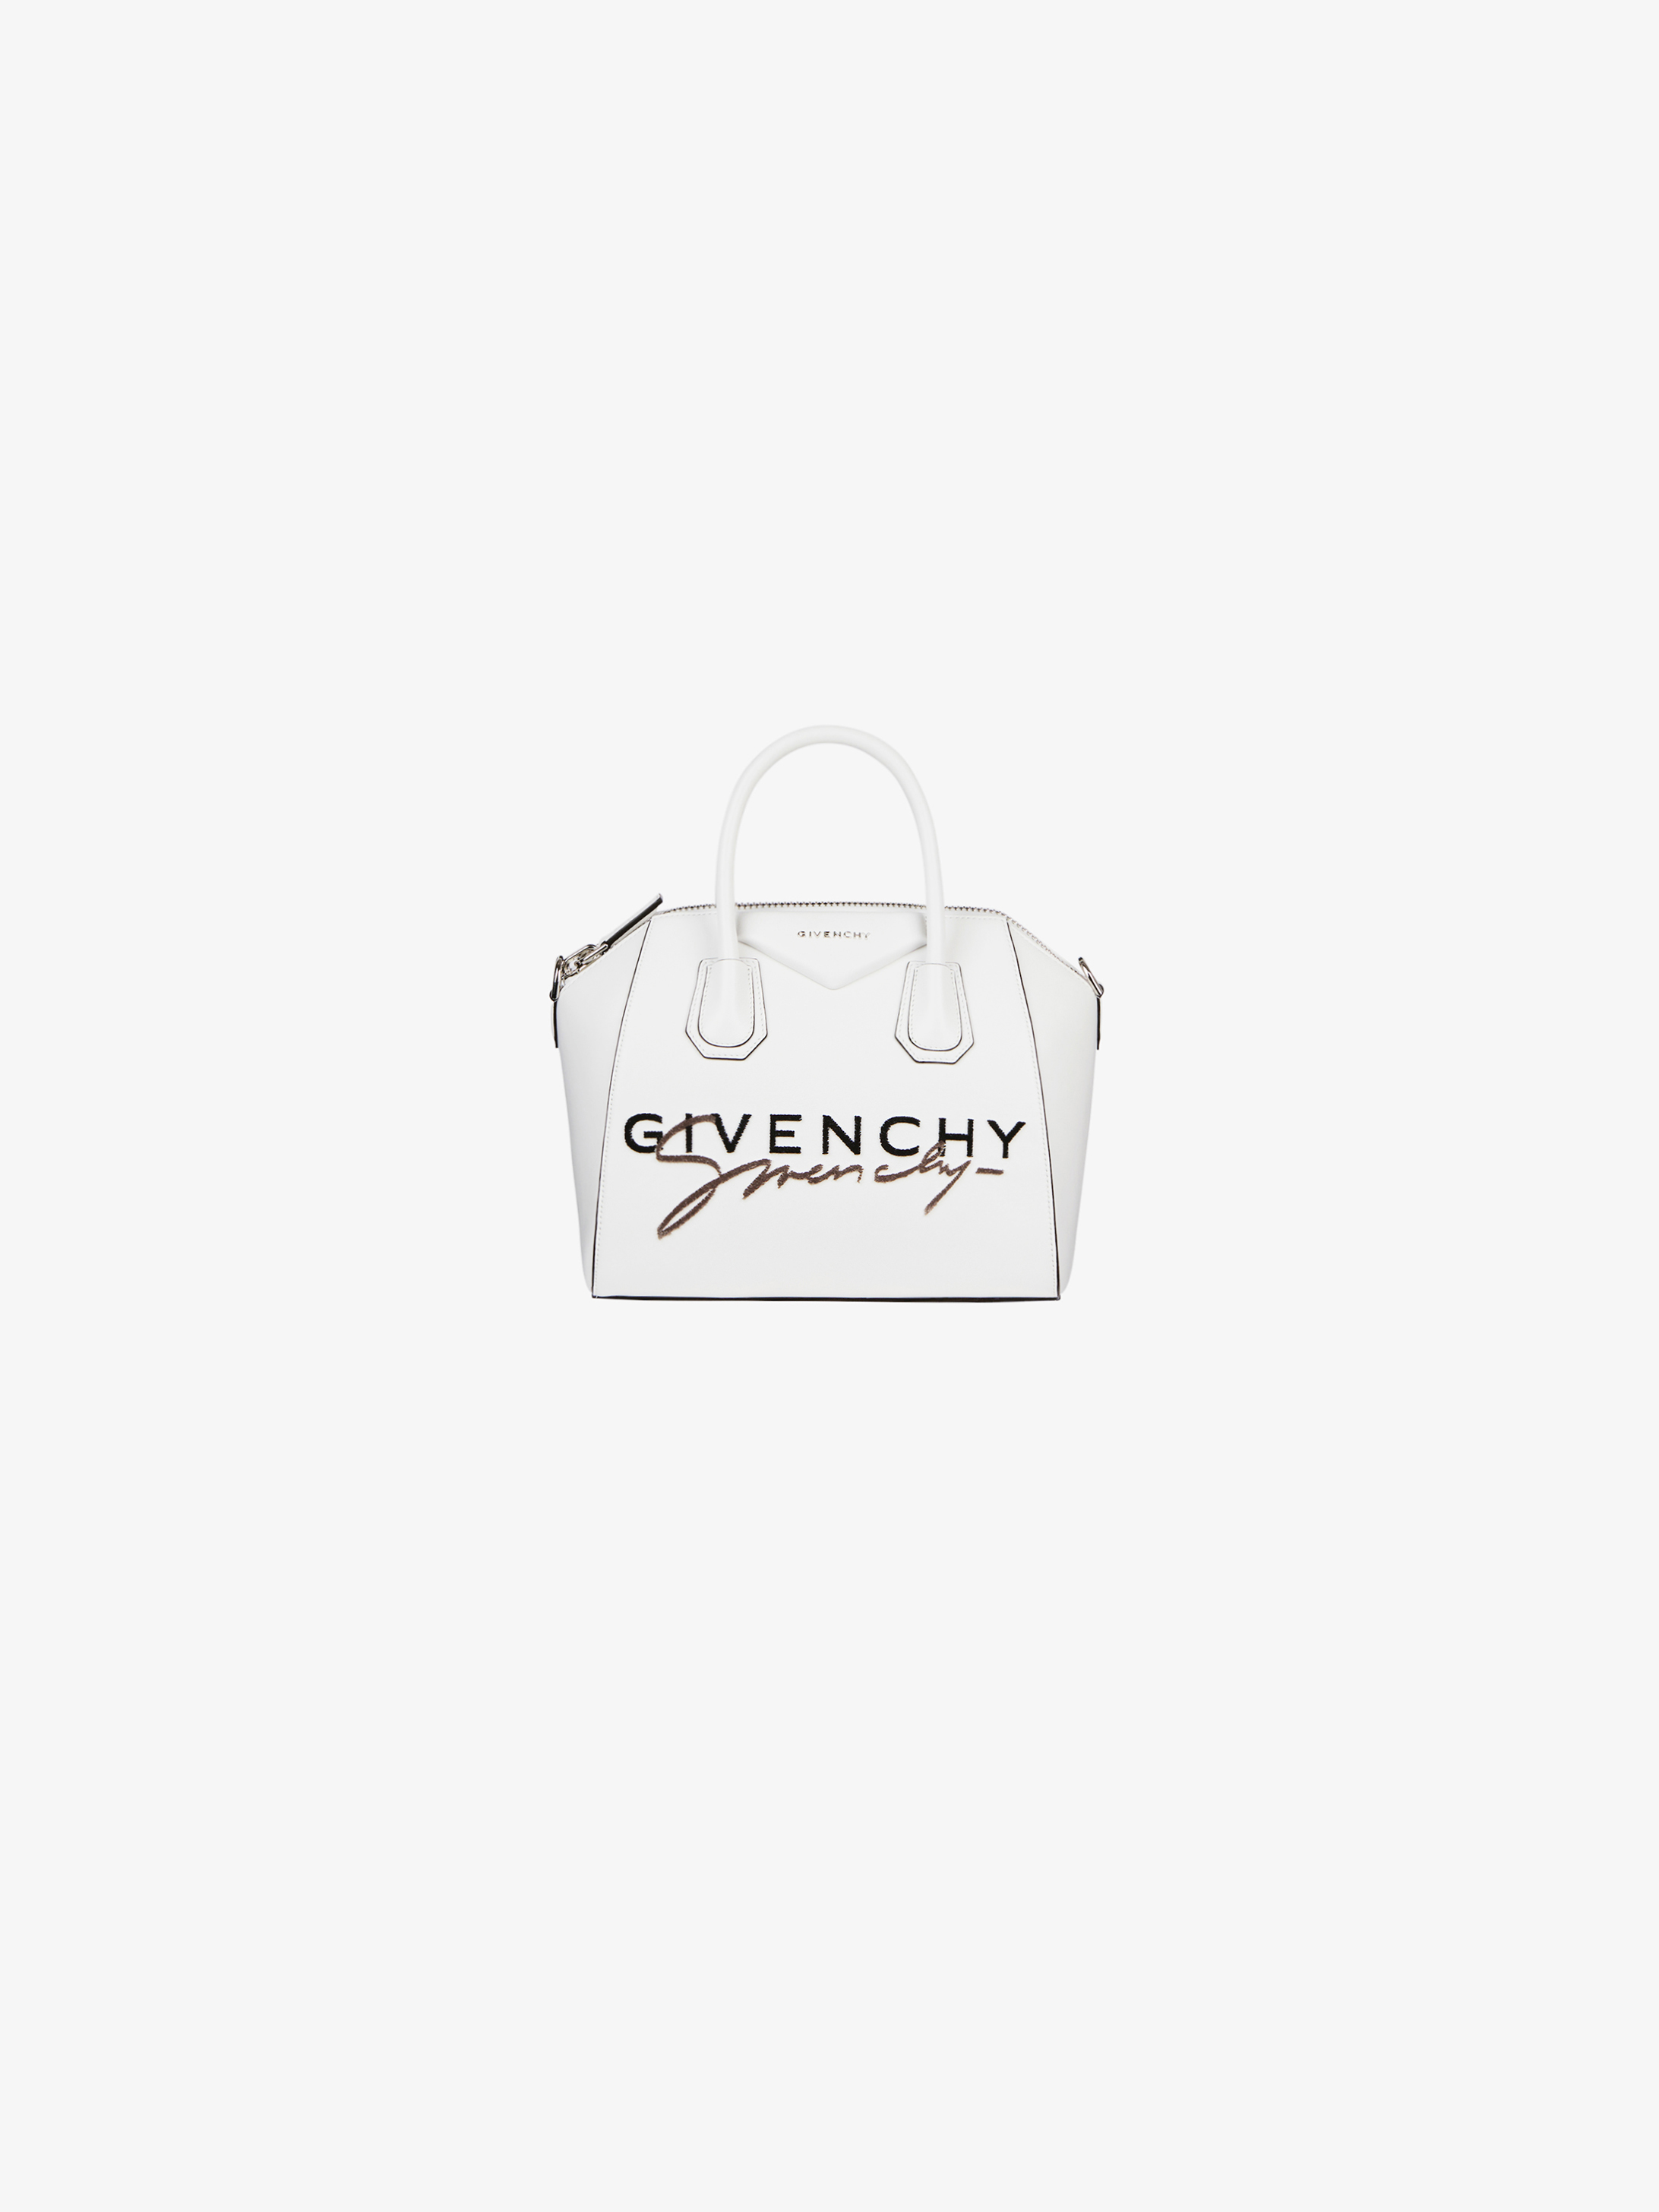 GIVENCHY embroidered mini Antigona bag in leather